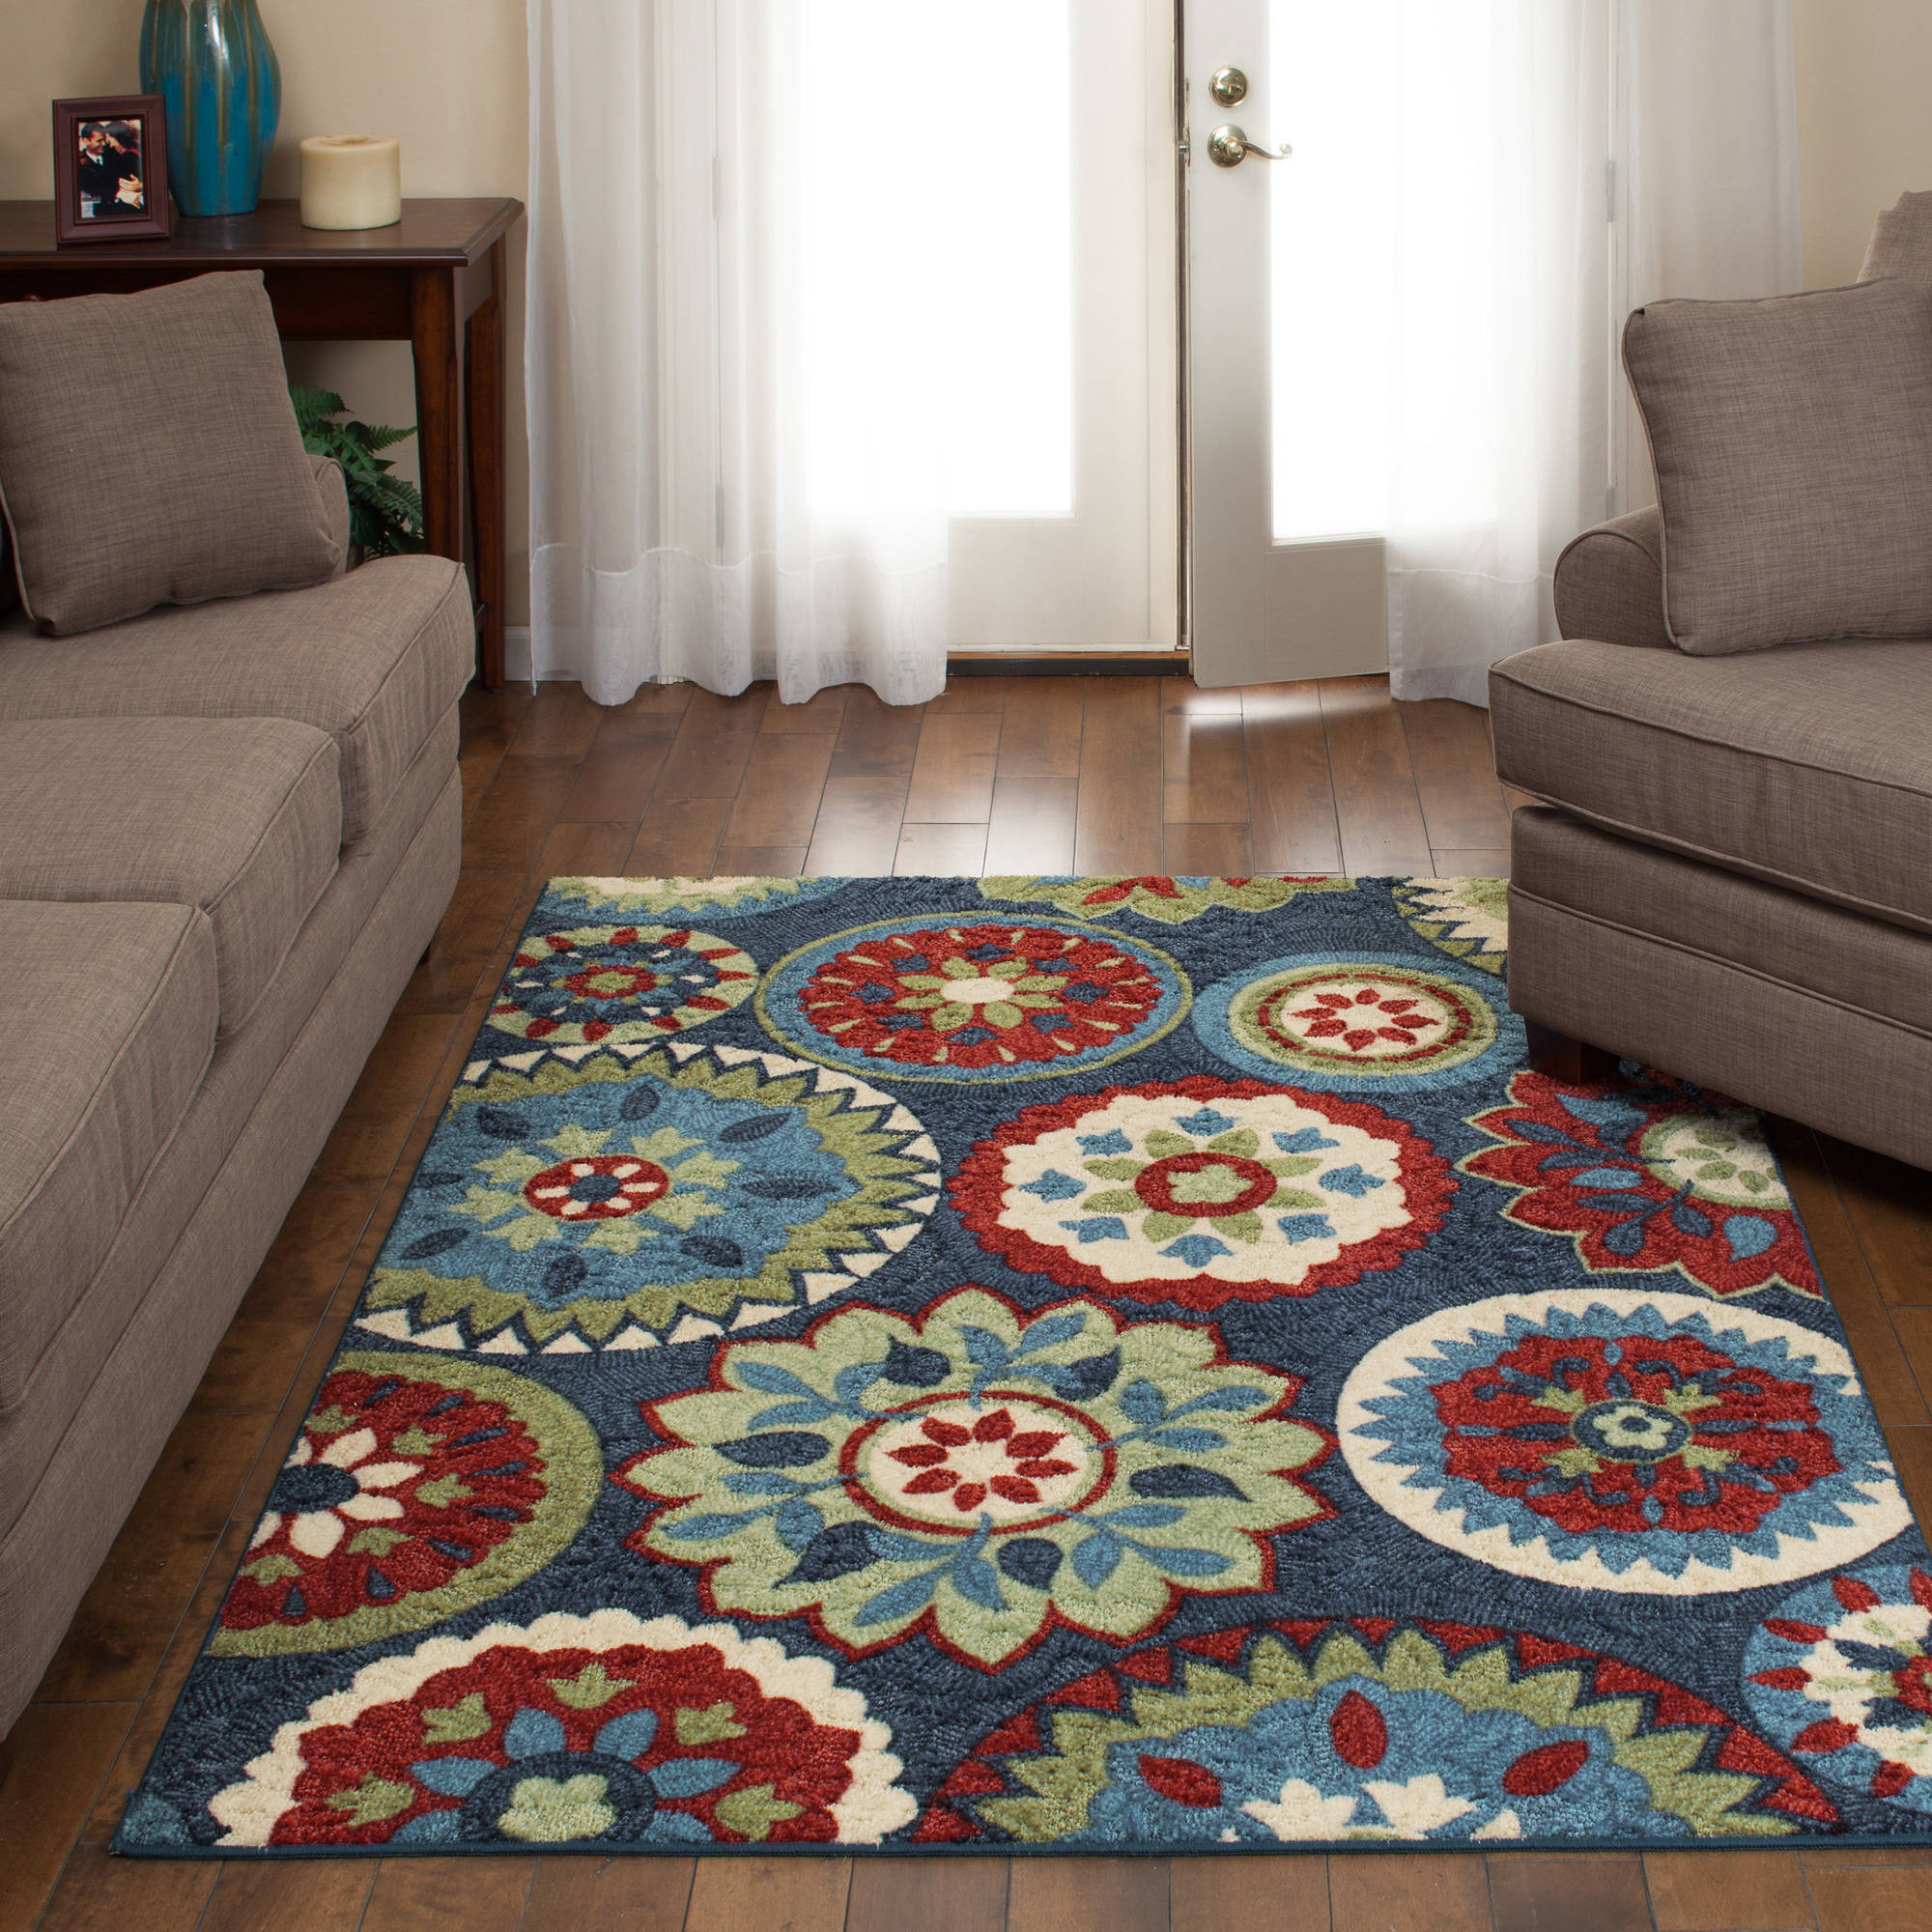 rug grid rugs and ebay better area itm homes gardens spice